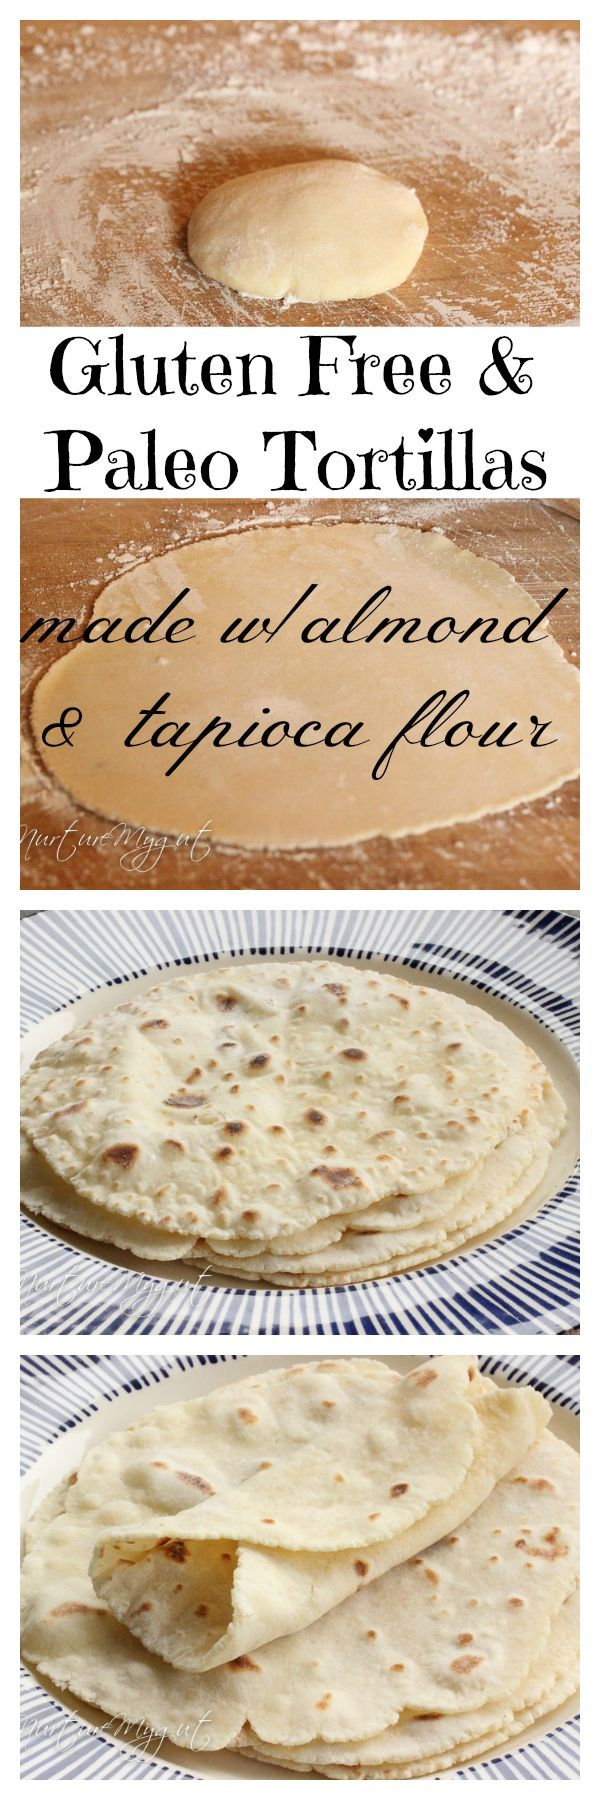 Best Gluten Free & Paleo Tortillas! Made with blanched almond and tapioca flour. No eggs or dairy. Can be made in 20 minutes or less. Dough stores well in the fridge for several days.